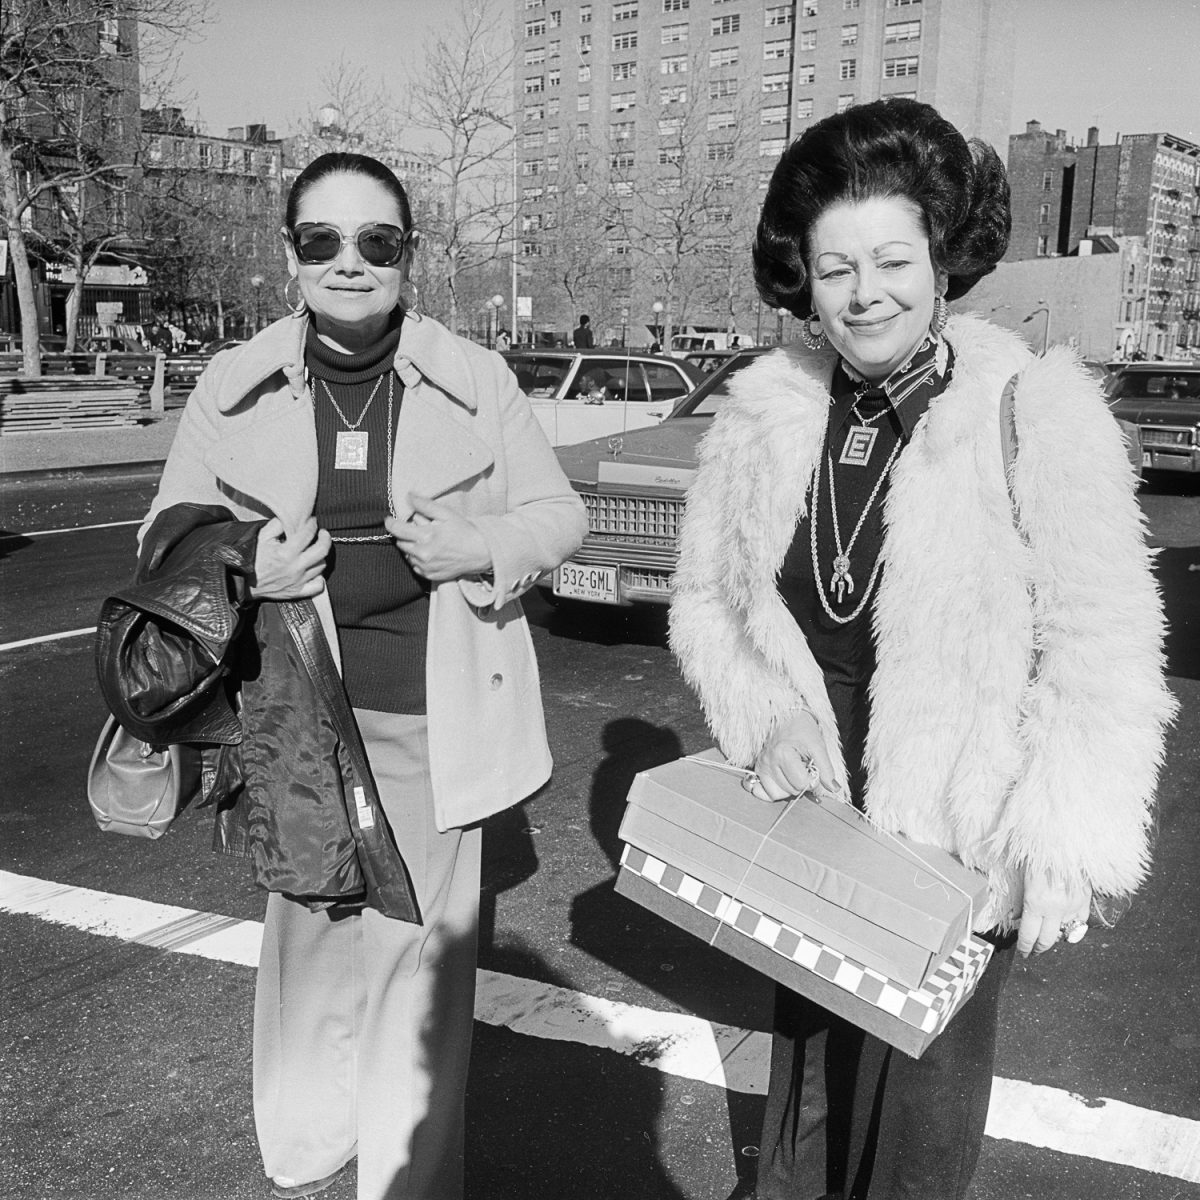 Women With Gift Boxes - New York, NY April 1978